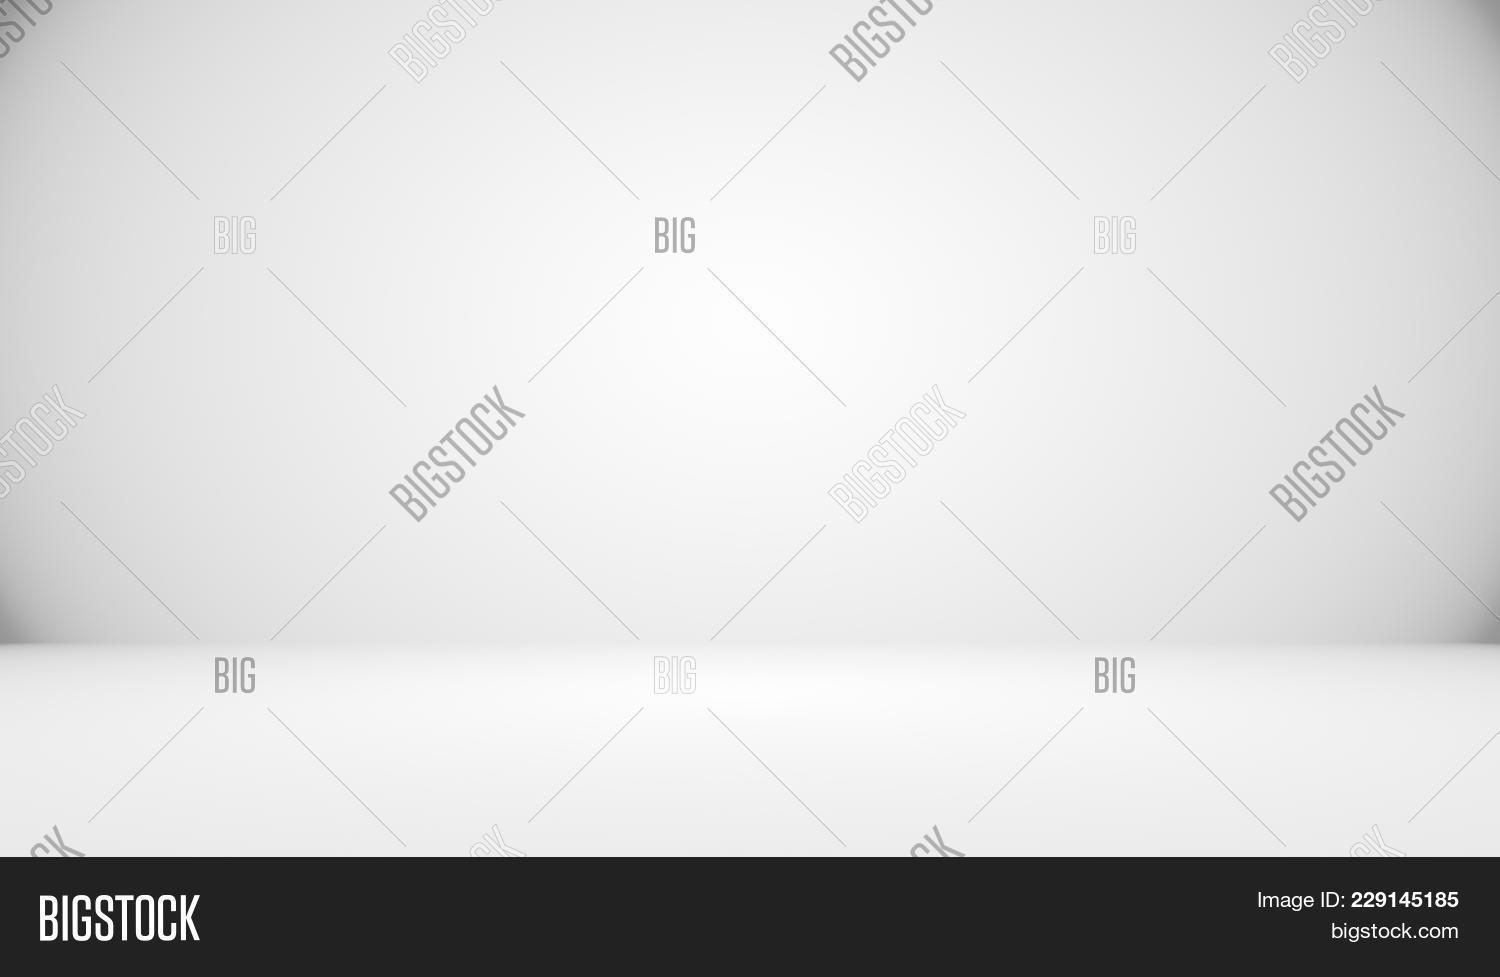 abstract,backdrop,background,bar,black,blank,blur,bright,business,circle,circular,creative,dark,design,digital,dots,effect,empty,floor,frame,gradient,graphic,gray,grey,illustration,light,line,marble,mesh,modern,pattern,photograph,picture,plain,report,rich,room,simple,smooth,solid,space,studio,template,text,texture,wall,wallpaper,web,website,white